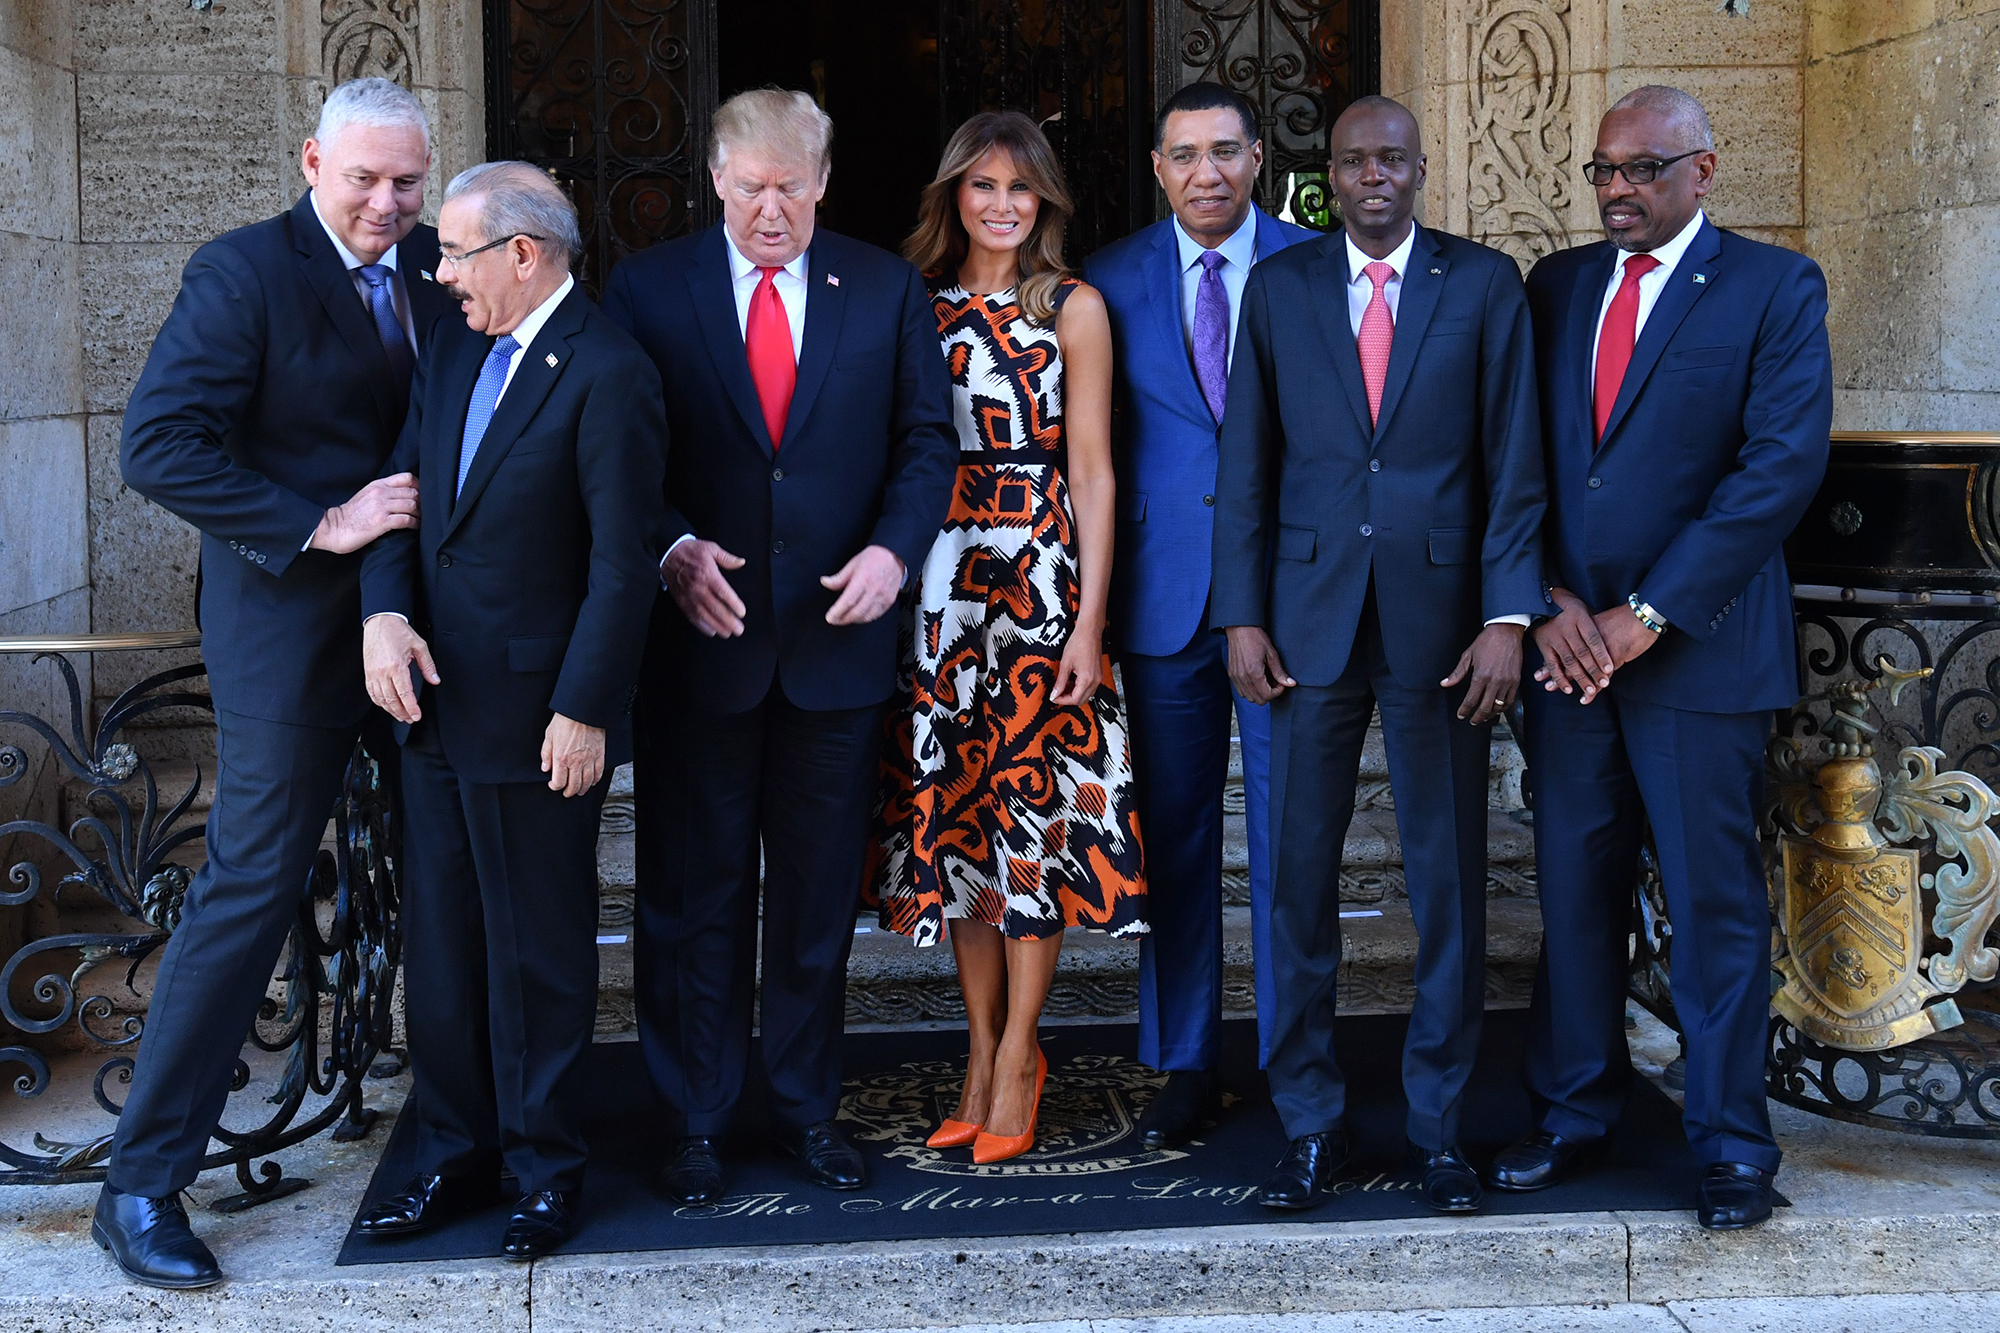 Melania Trump's Most Stylish Moments Since Taking on the FLOTUS Title - US President Donald Trump and First Lady Melania Trump host Caribbean leaders at the Mar-a-Lago estate in West Palm Beach Florida, on March 22, 2019.